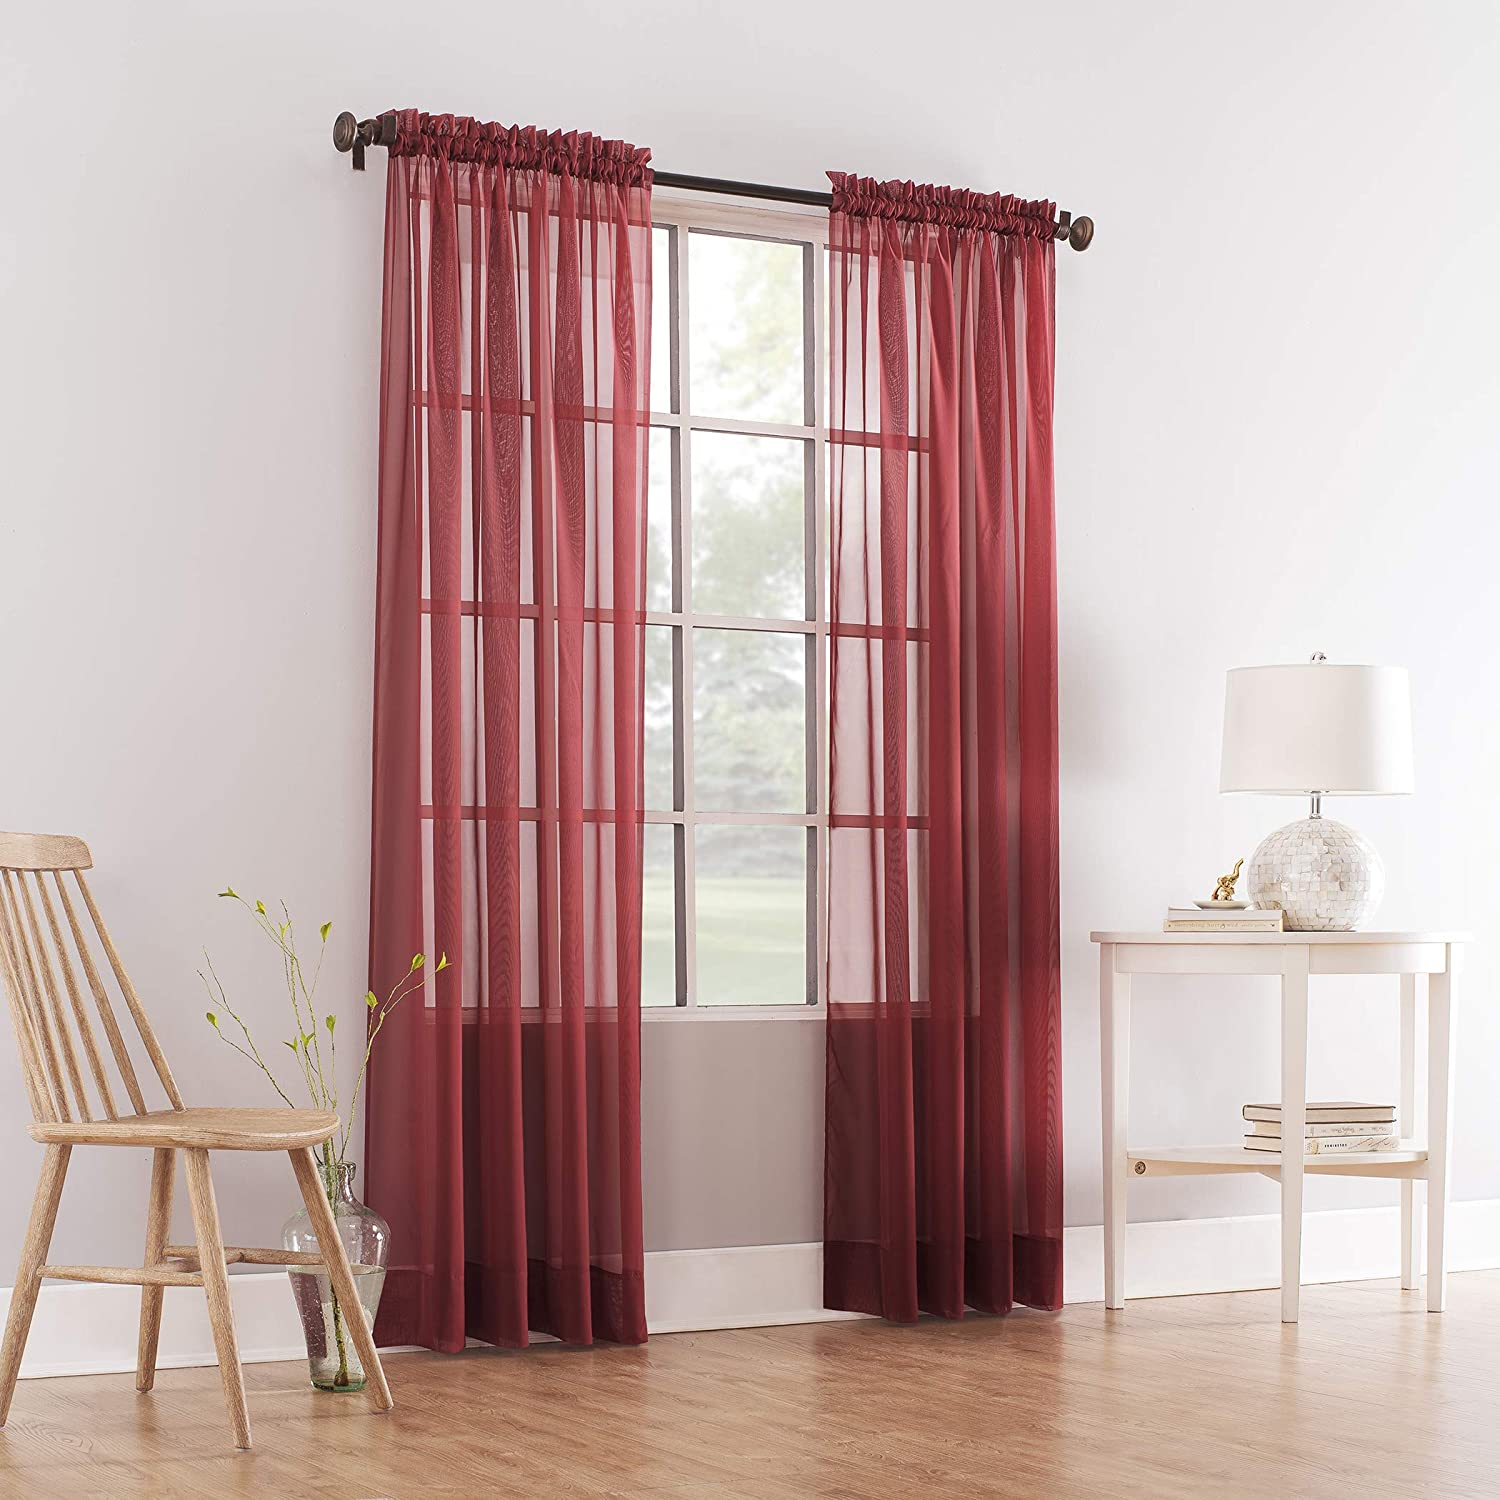 Comfy Deal 2 Pieces Beautiful Elegance Fully Stitched Window Sheer Voile Curtain Panel (Red)